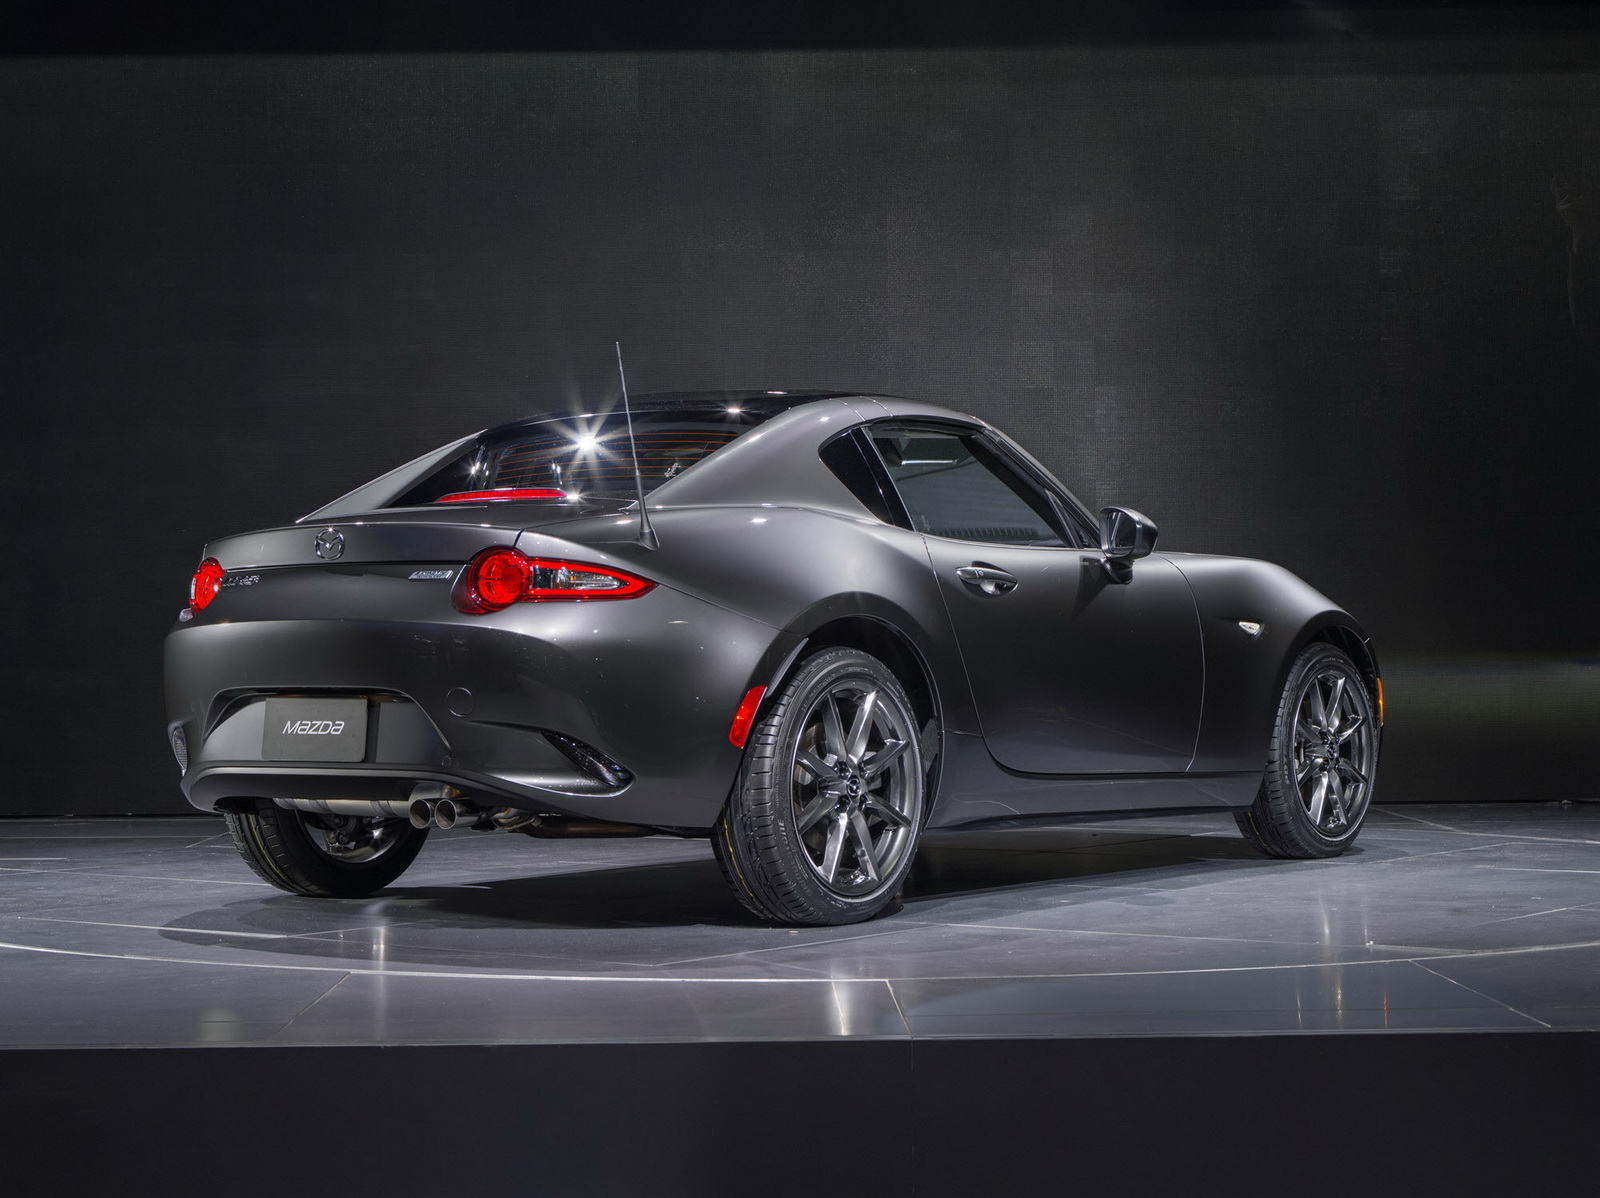 mazda mx 5 rf launch edition already sold out in the us carscoops. Black Bedroom Furniture Sets. Home Design Ideas